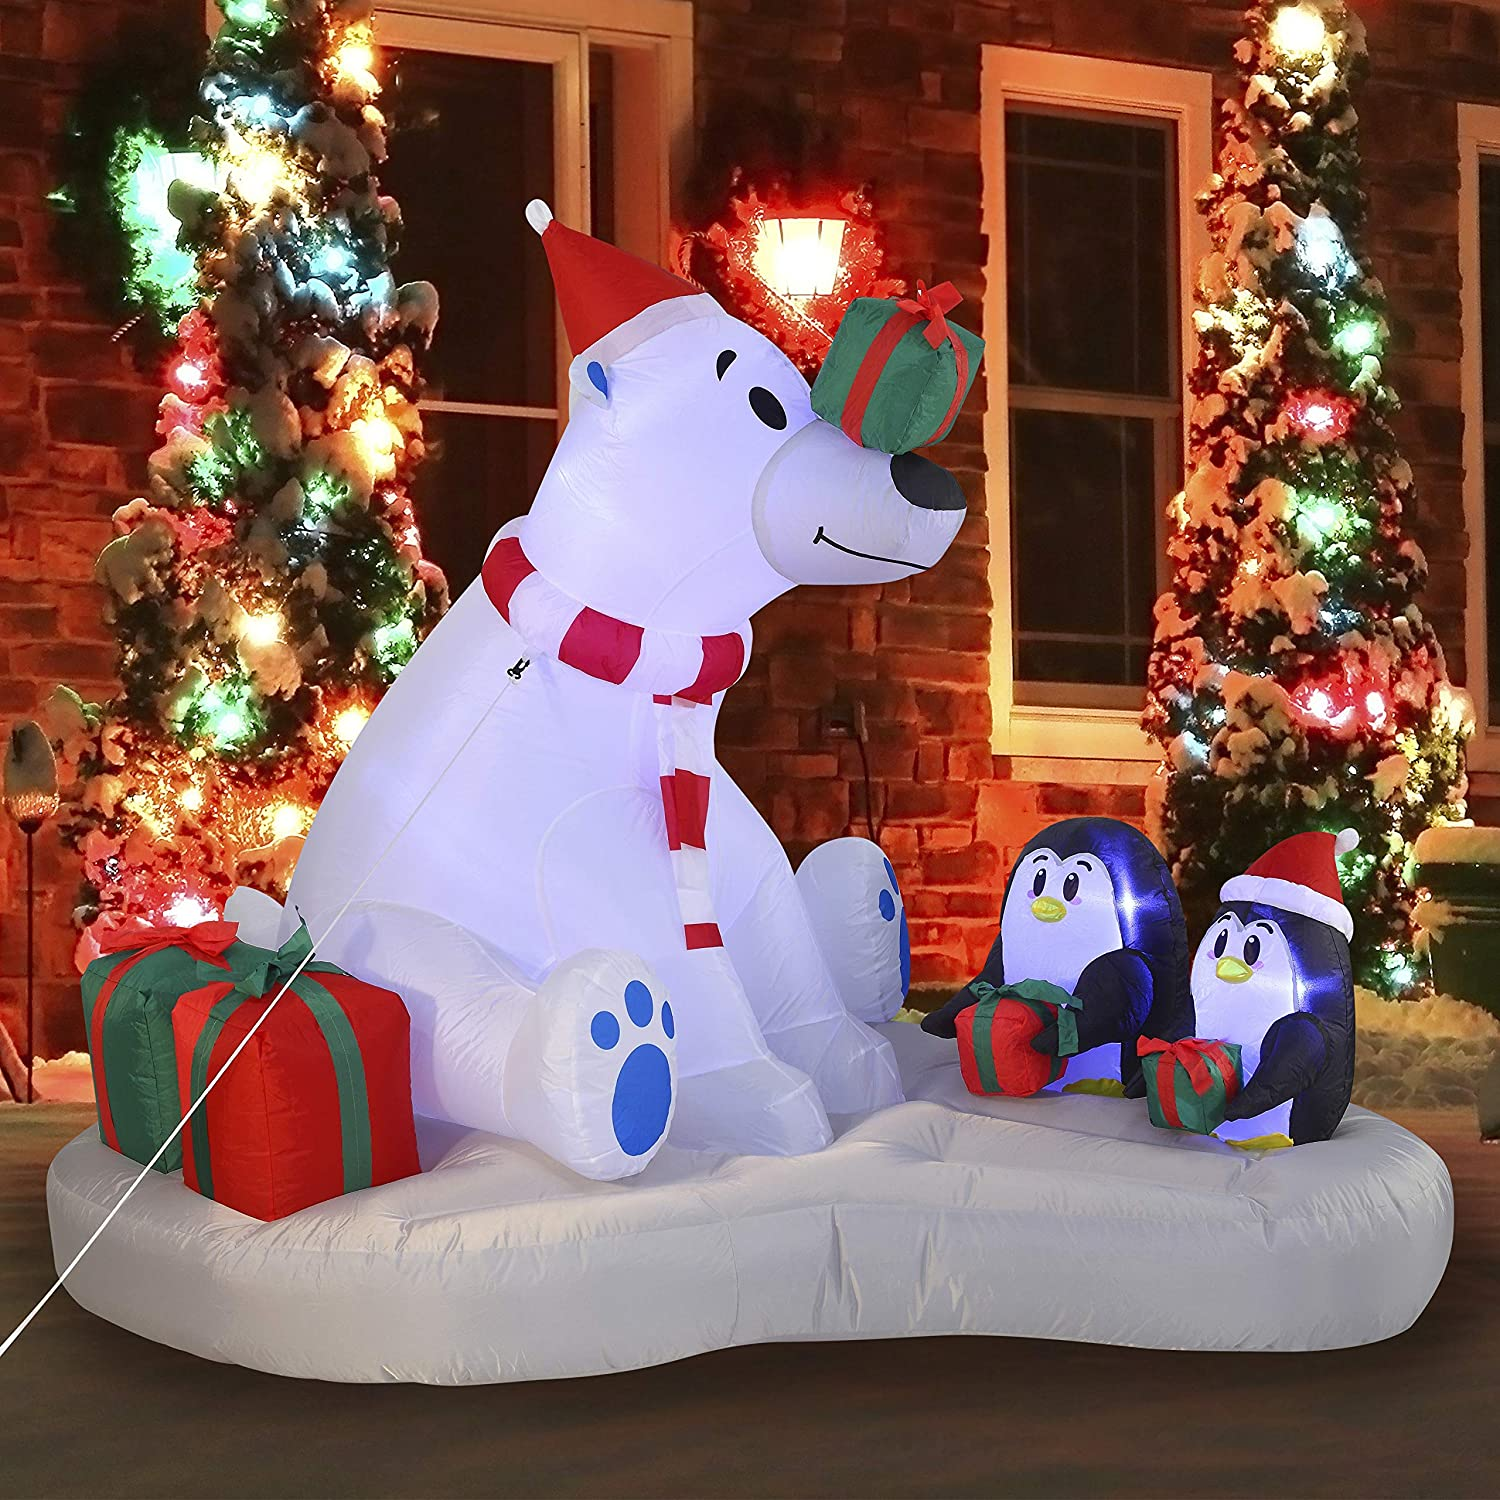 Joiedomi Christmas Polar Bear Giveaway Gifts Inflatable 6 ft with Build-in LEDs Blow Up Inflatables for Christmas Party Indoor, Outdoor, Yard, Garden, Lawn Décor, Holiday Season Decorations